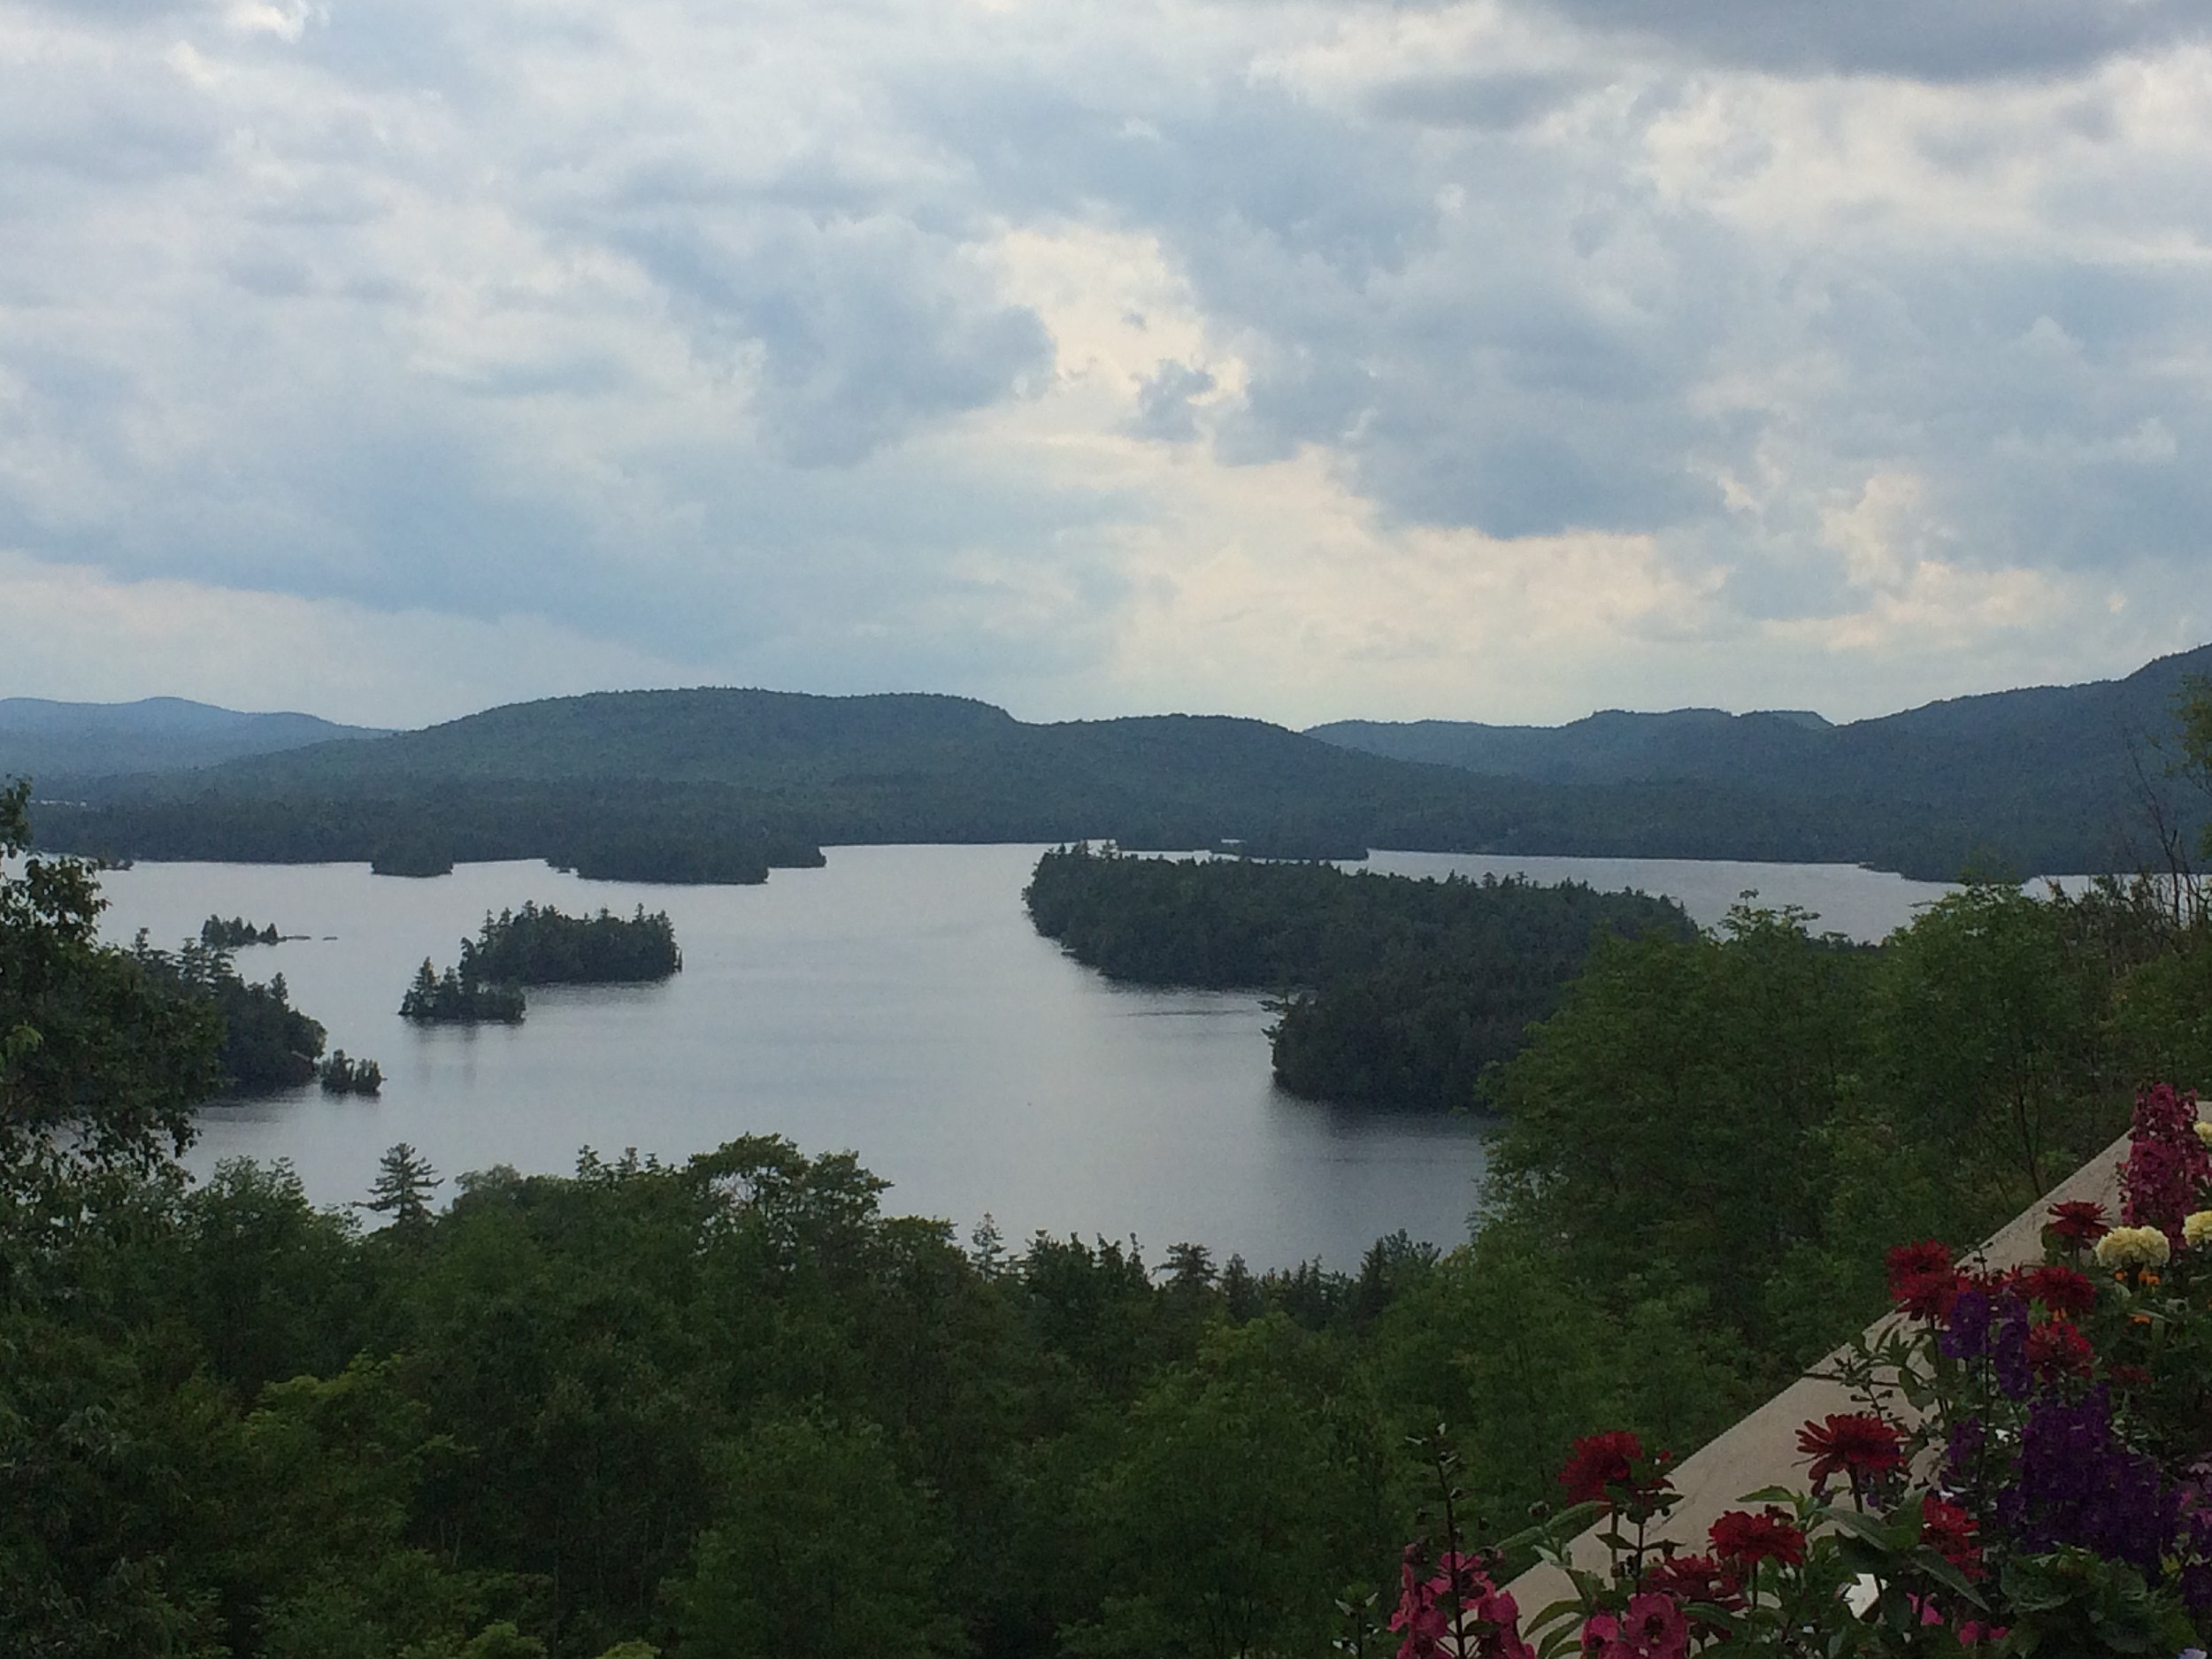 View of Blue Mountain Lake From the Adirondack Experience Museum